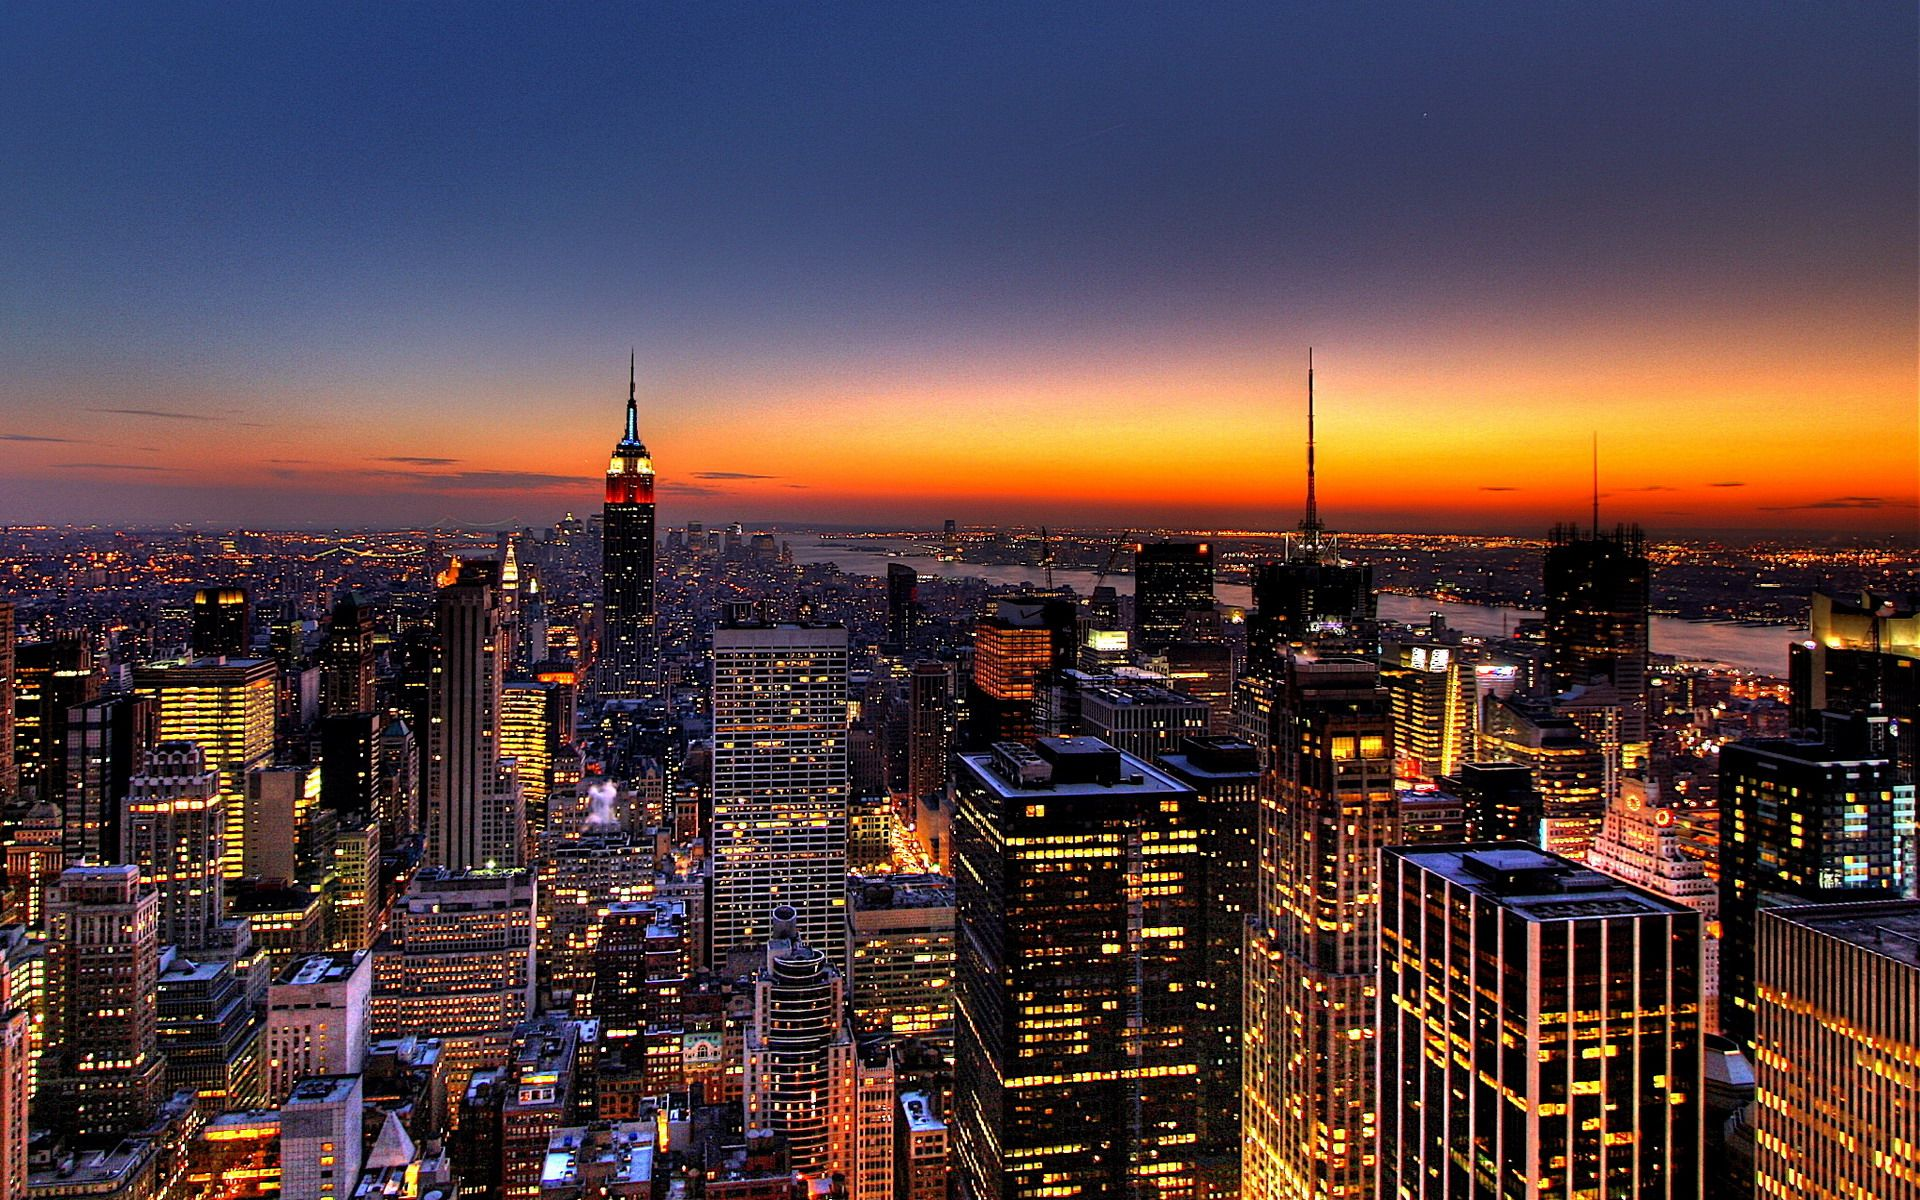 aerial view freedom tower new york city night hd images